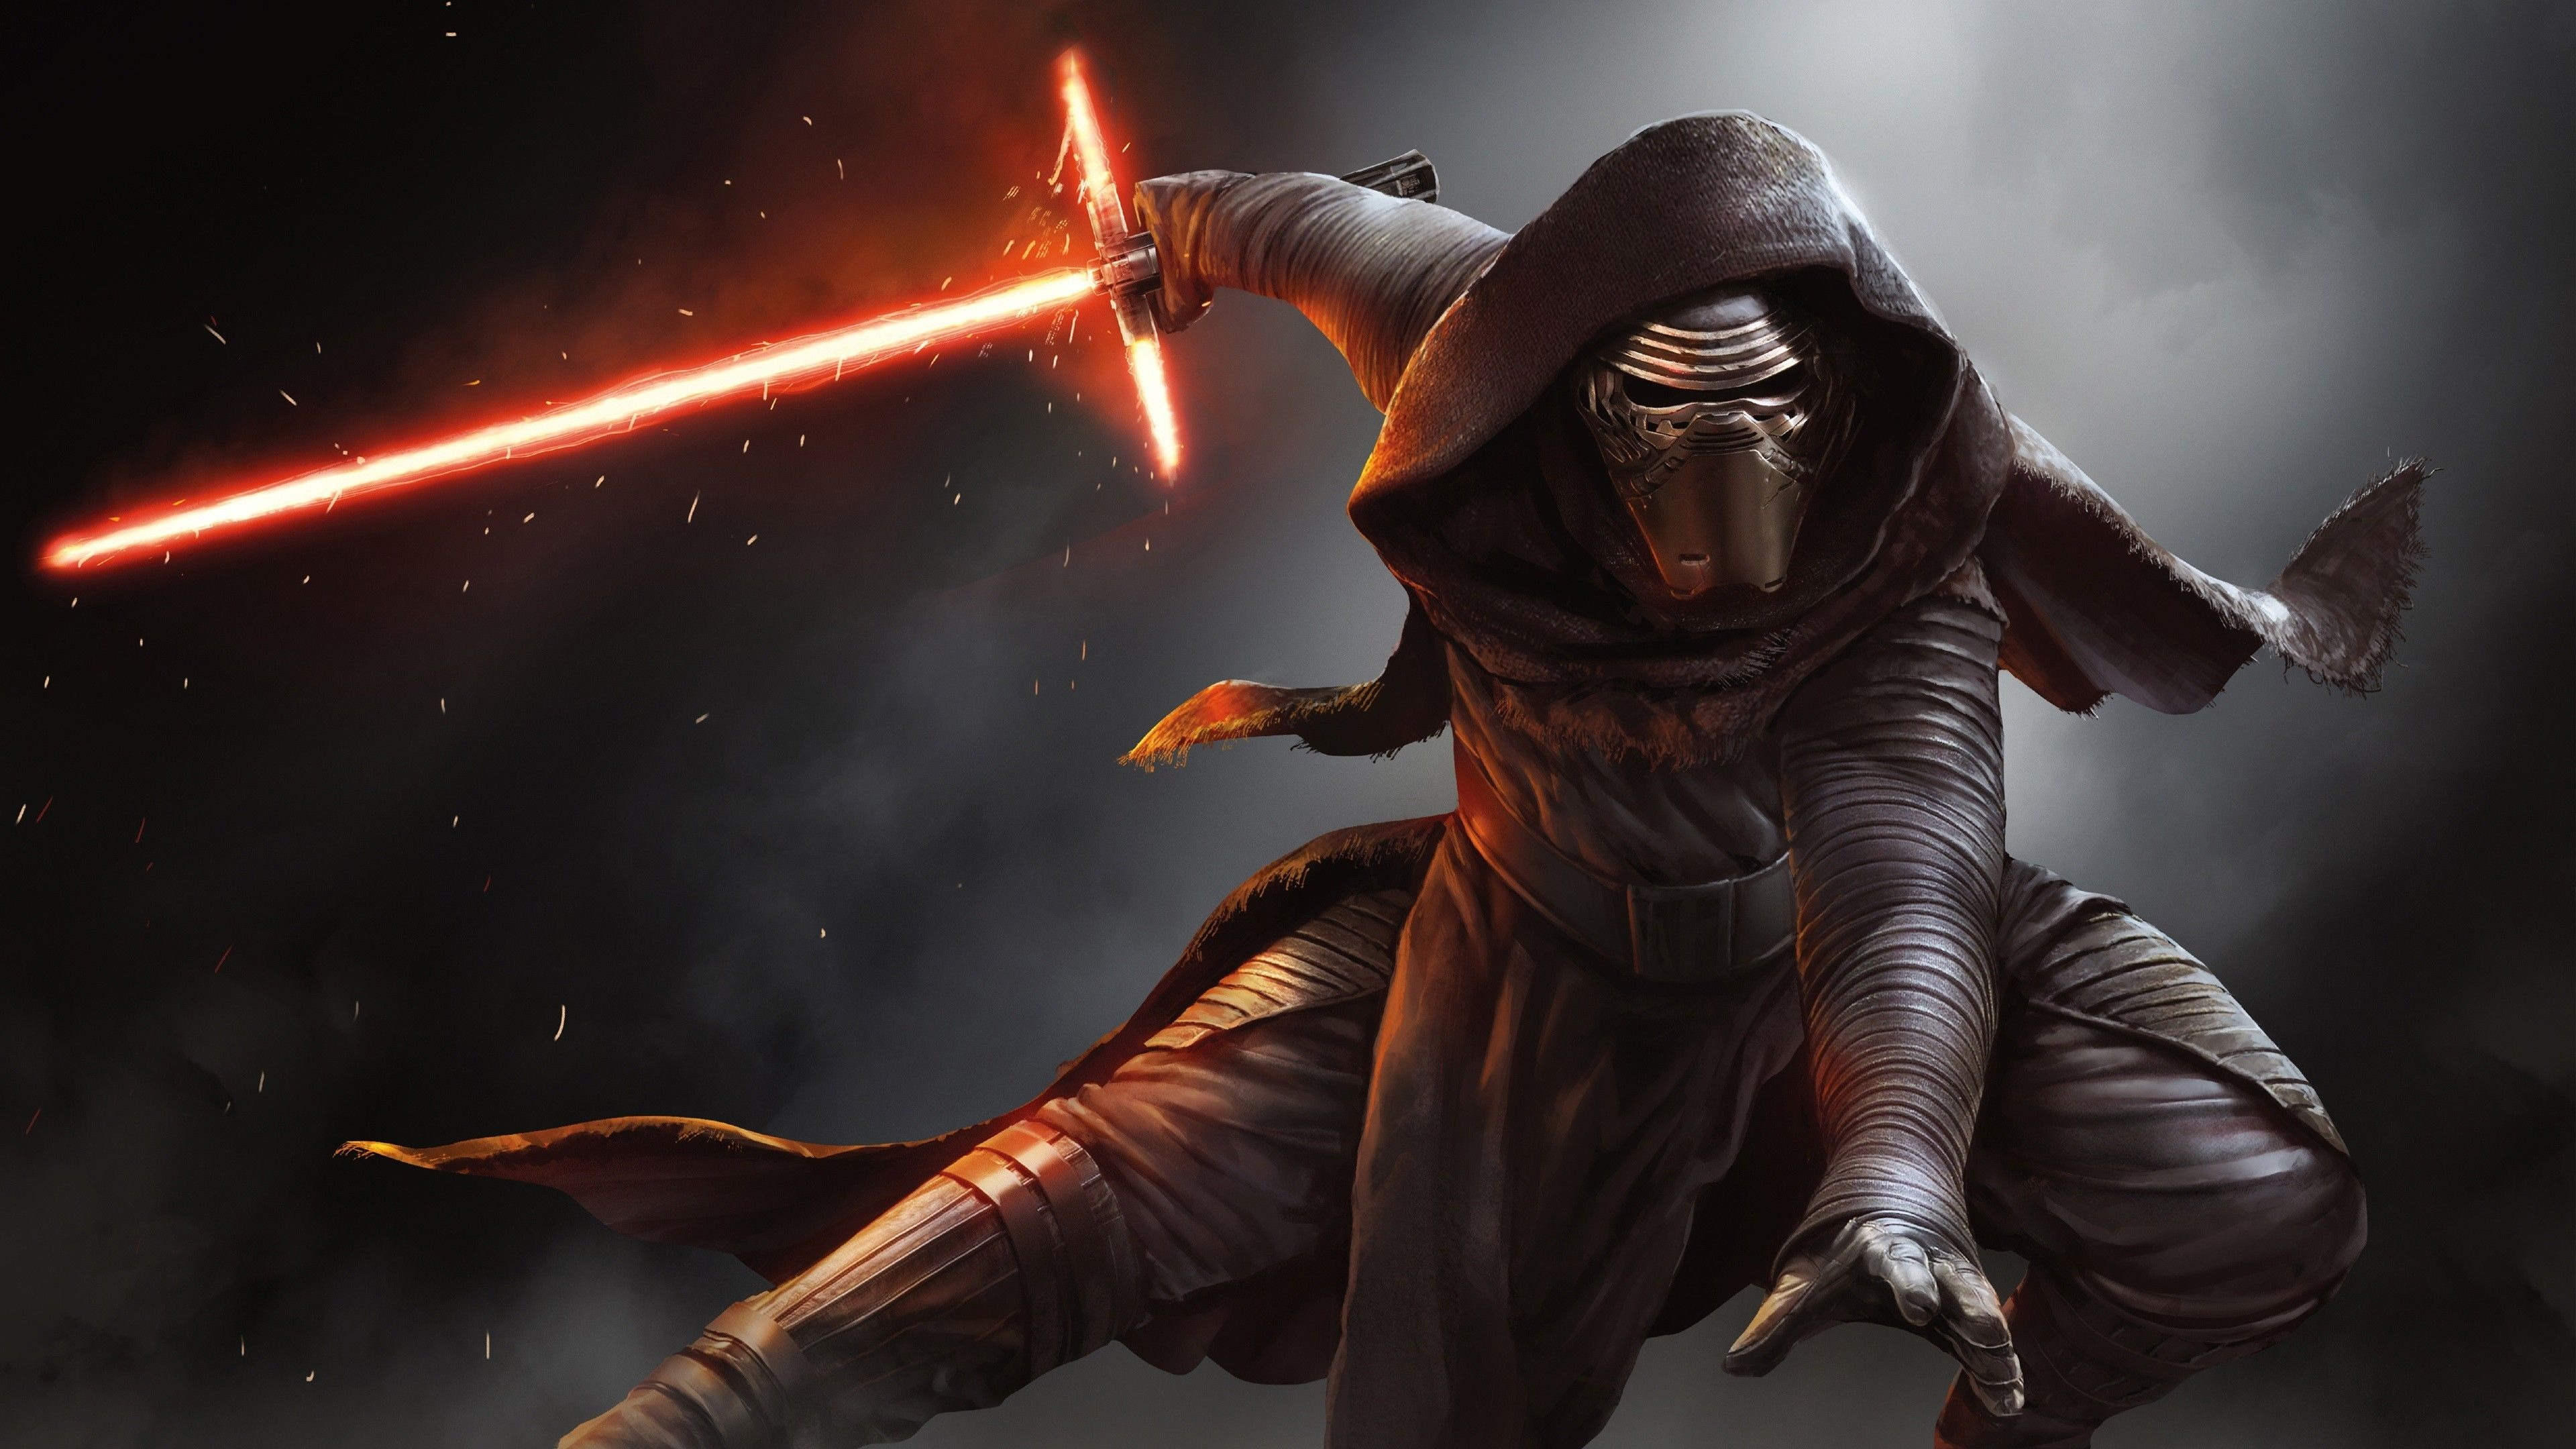 Kylo Ren 4k Wallpaper Star Wars Poster Star Wars Wallpaper Ren Star Wars